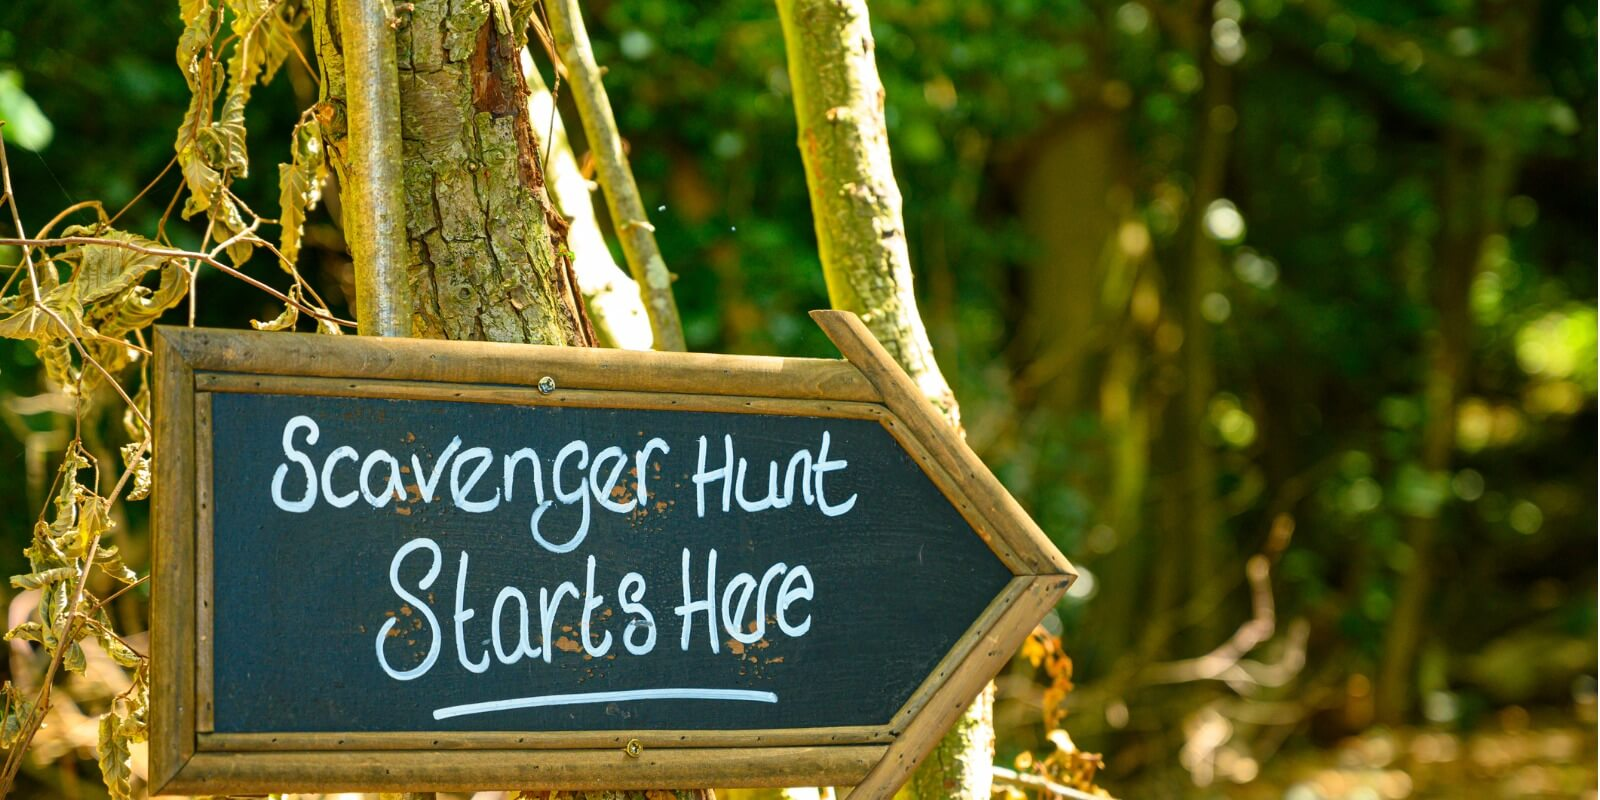 Scavenger Hunt Starting Sign